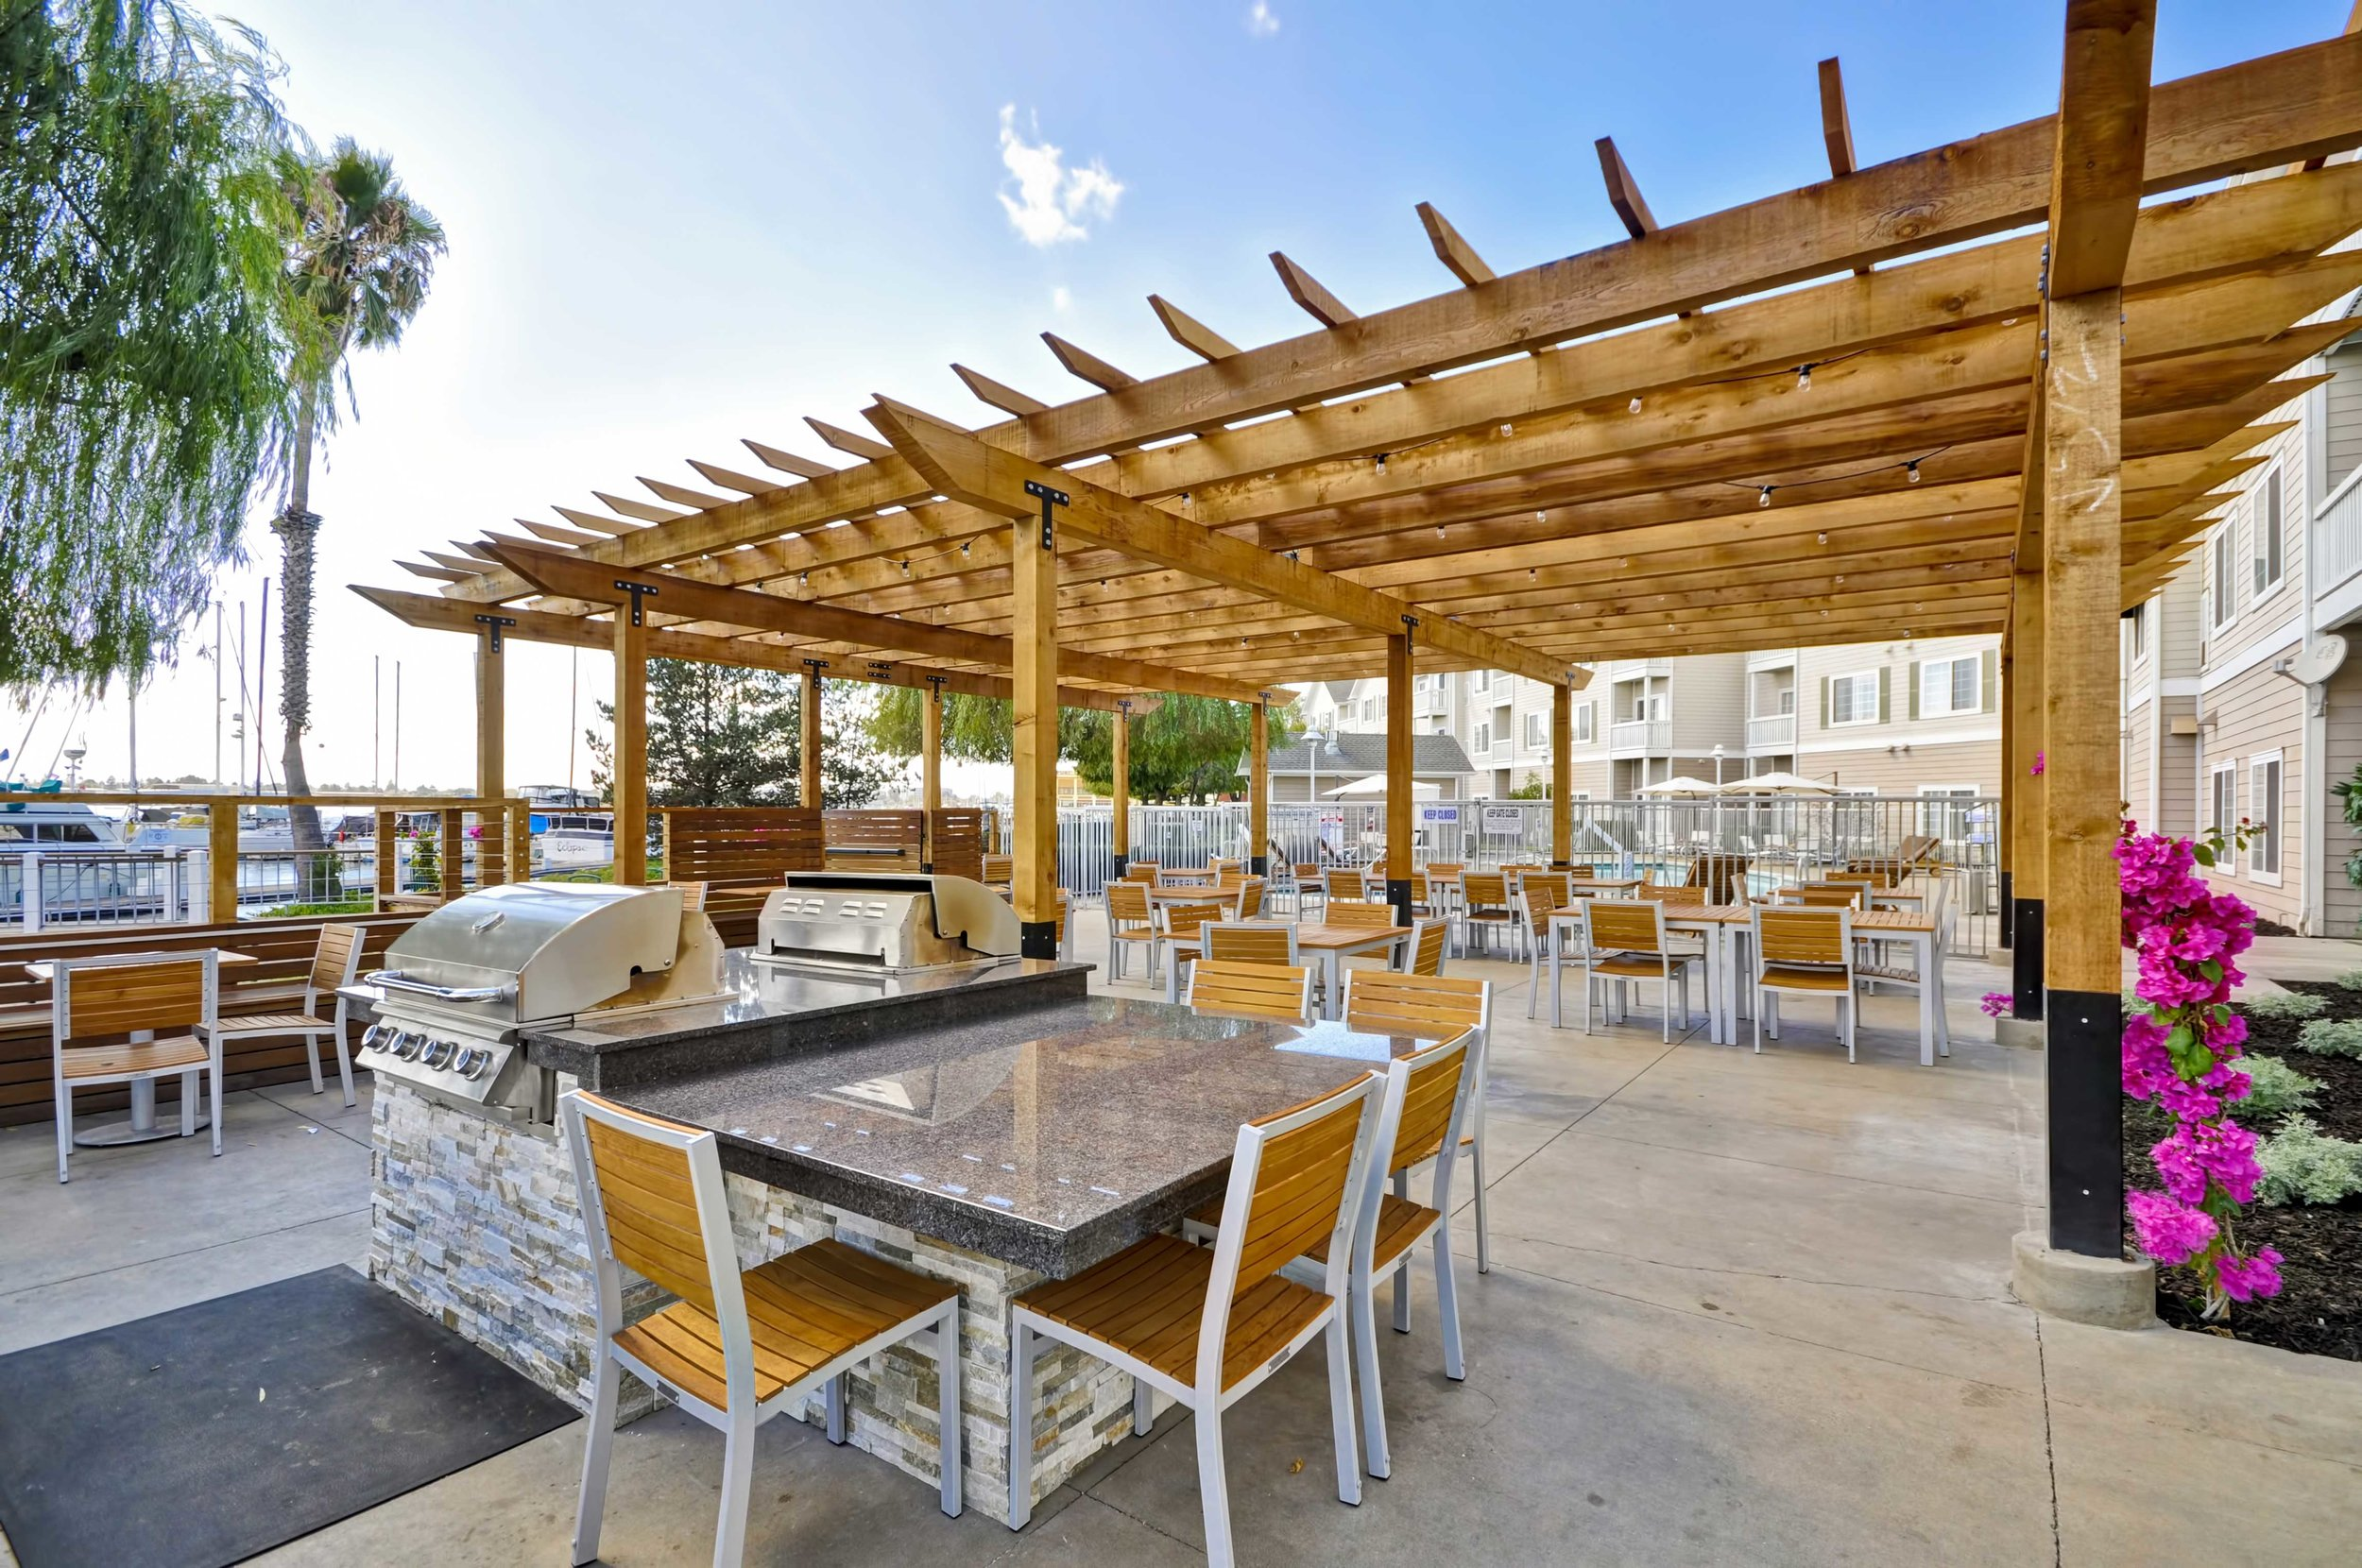 10-Homewood-Suites-Oakland-Patio-BBQ-Pool-Marina-View.jpg